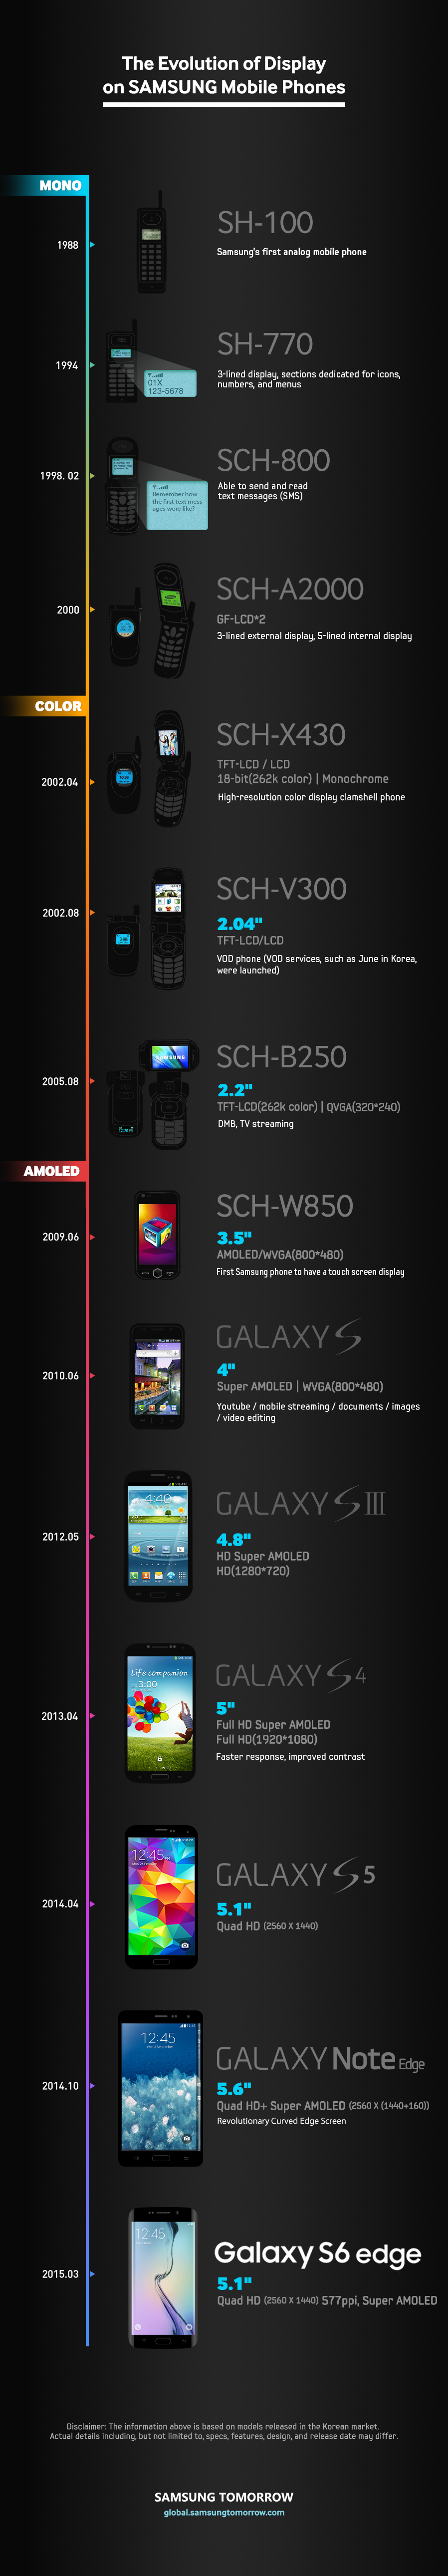 [Infographic] The Evolution of Display on Samsung Mobile Phones